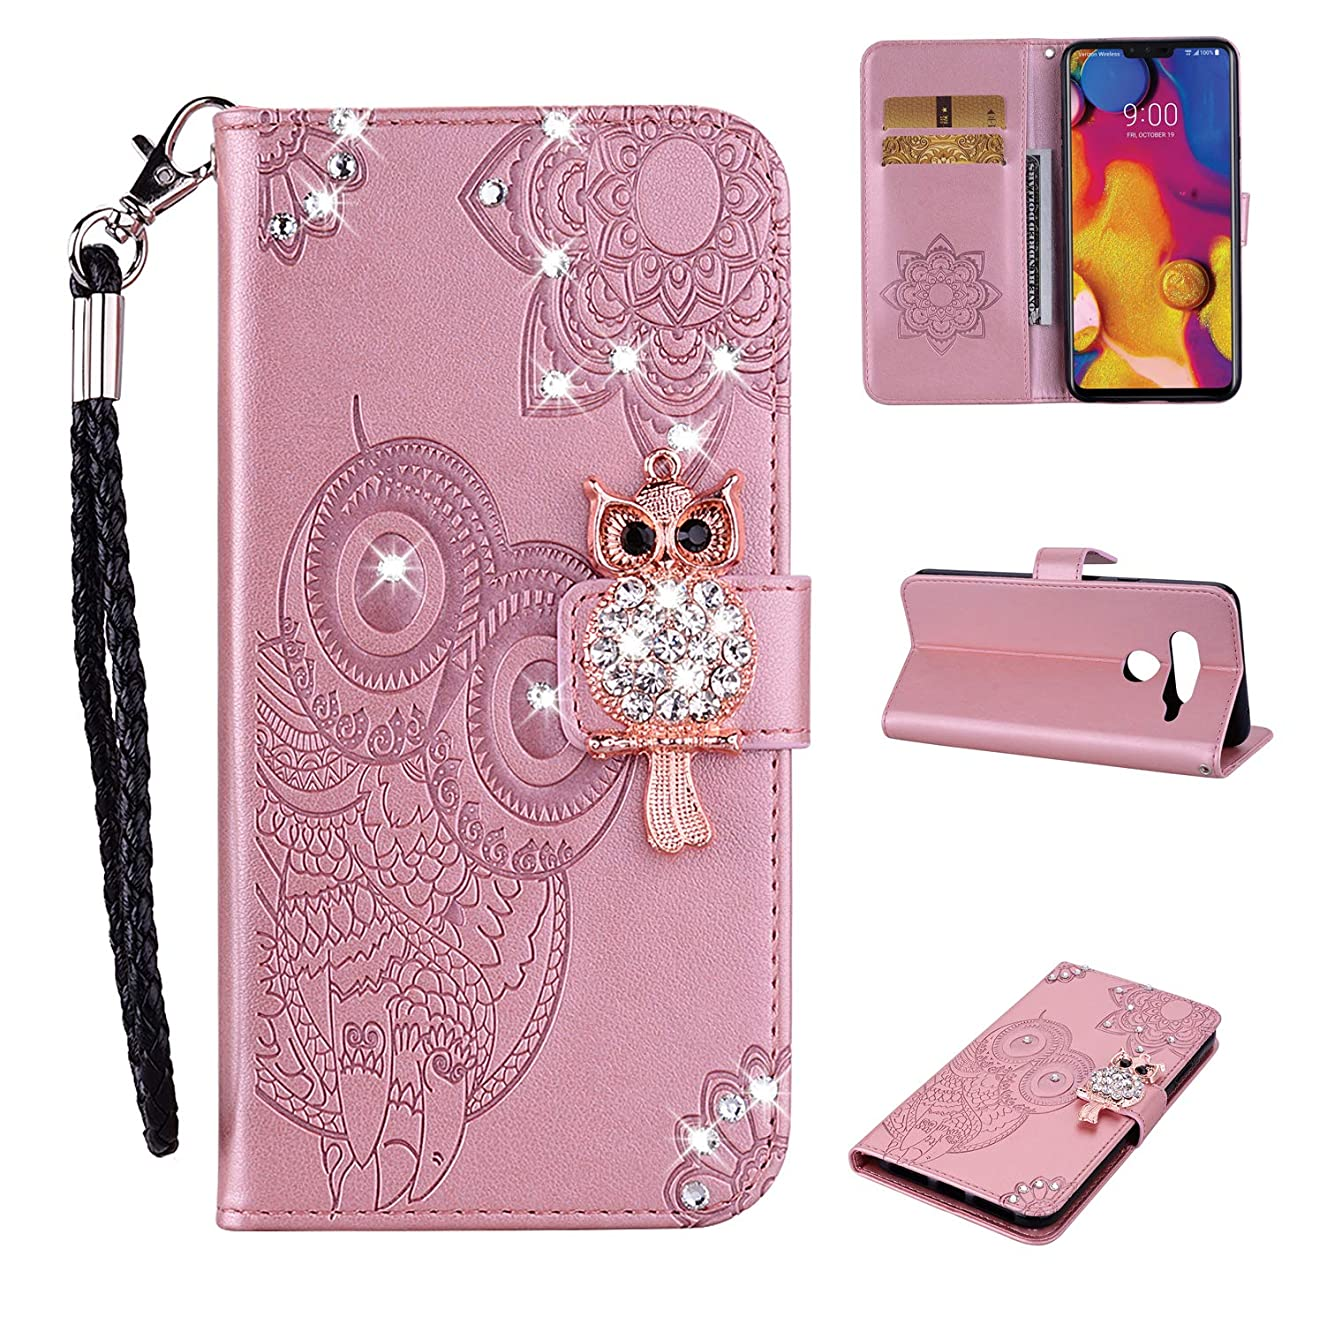 Cfrau Diamond Kickstand Case with Black Stylus for LG V40,Luxury Embossed Crystal 3D Owl Flower Bling Glitter Wallet PU Leather Shockproof Soft TPU Wrist String Case - Rose Gold